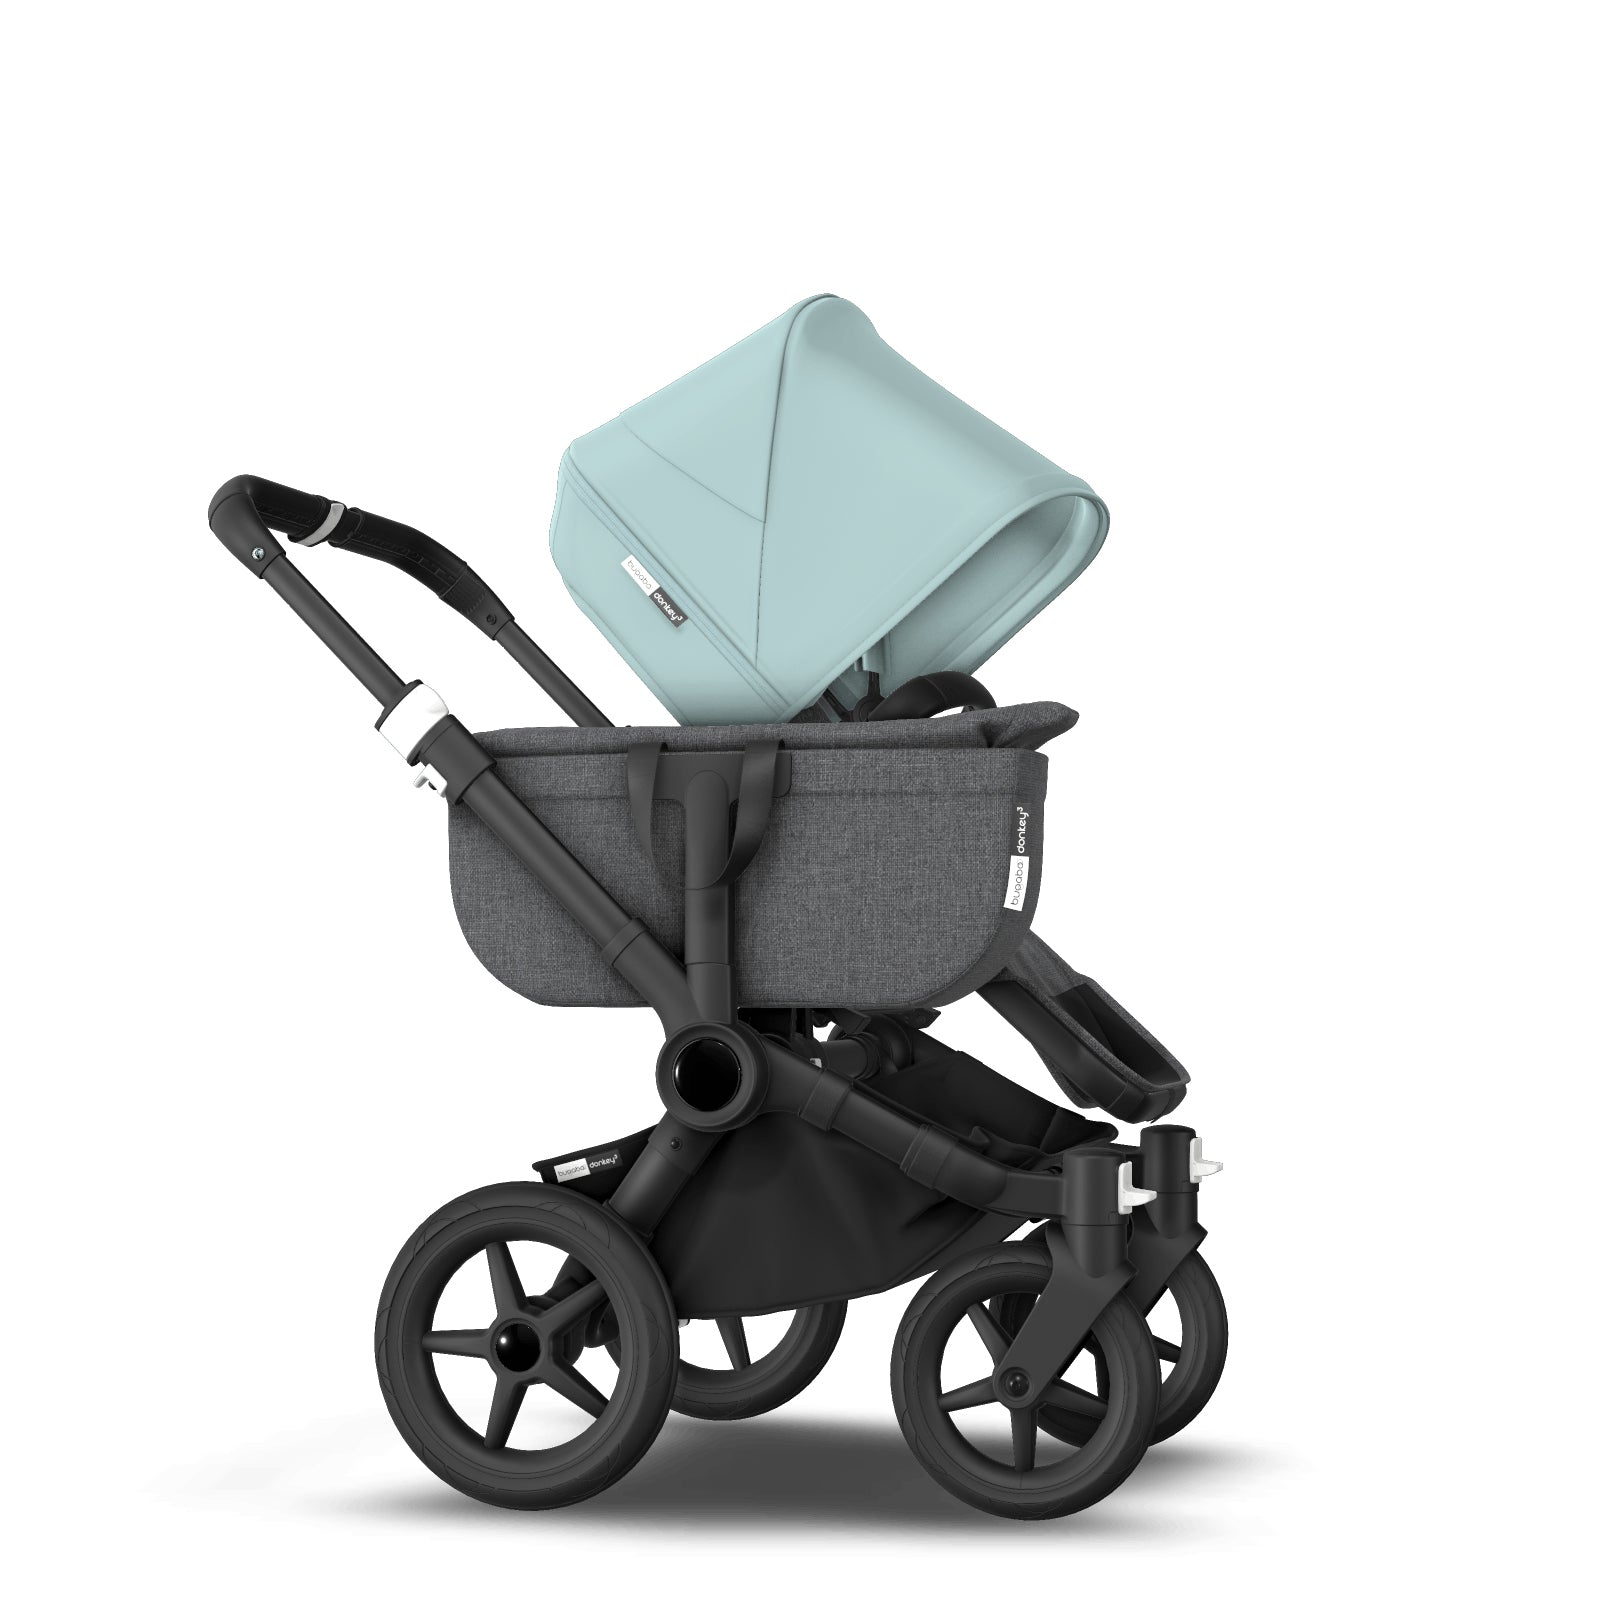 Bugaboo Donkey 3 Mono Seat and Carrycot Pushchair - Vapor Blue